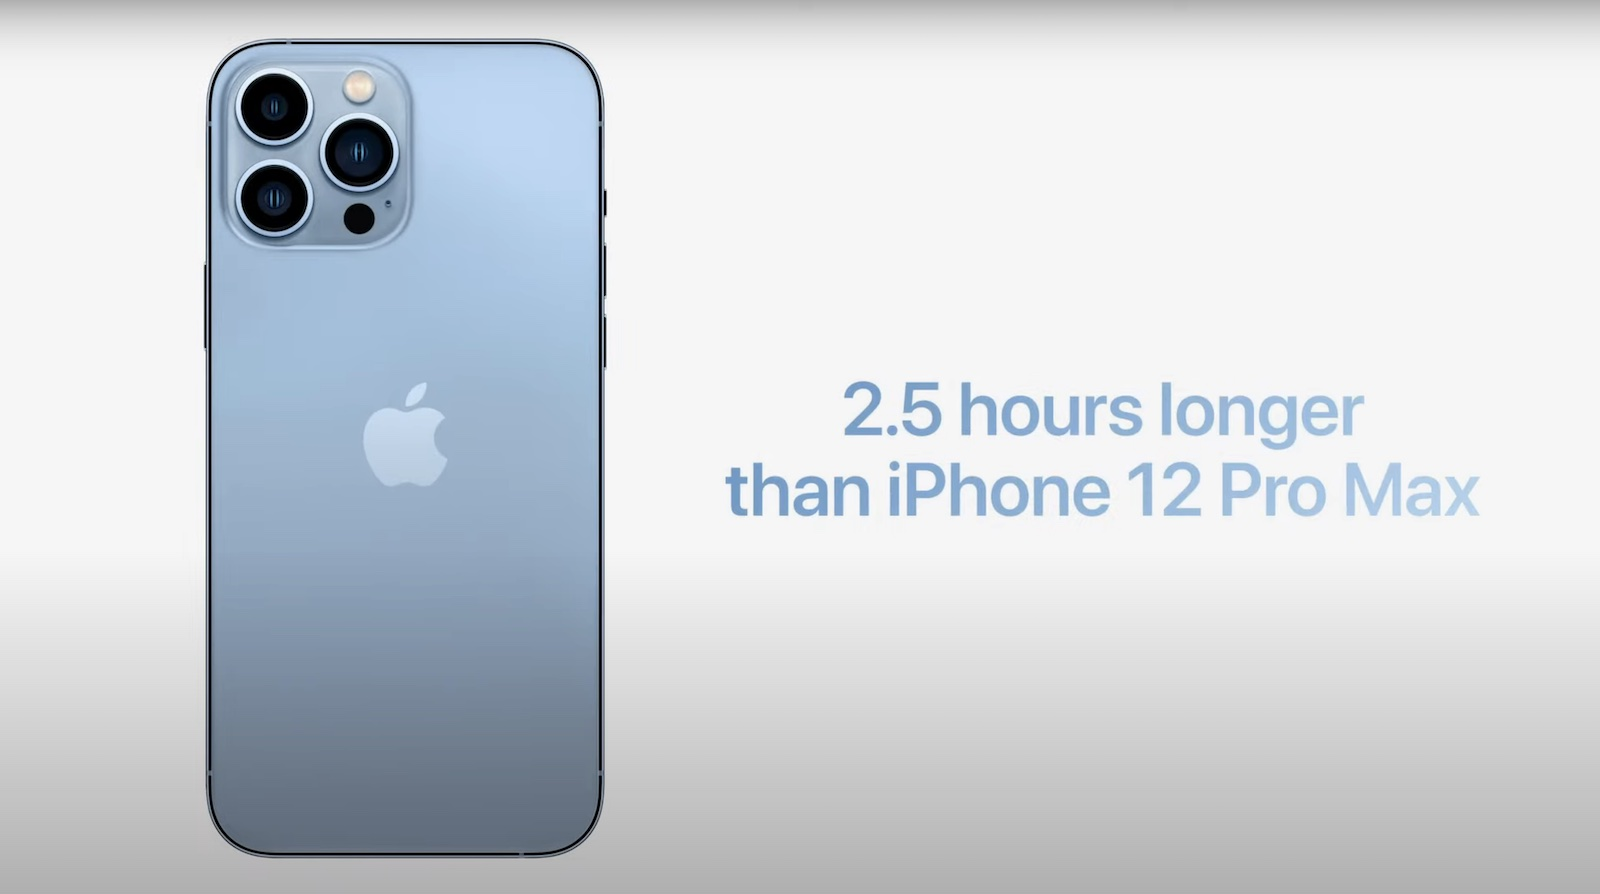 iphone 13 pro max battery life